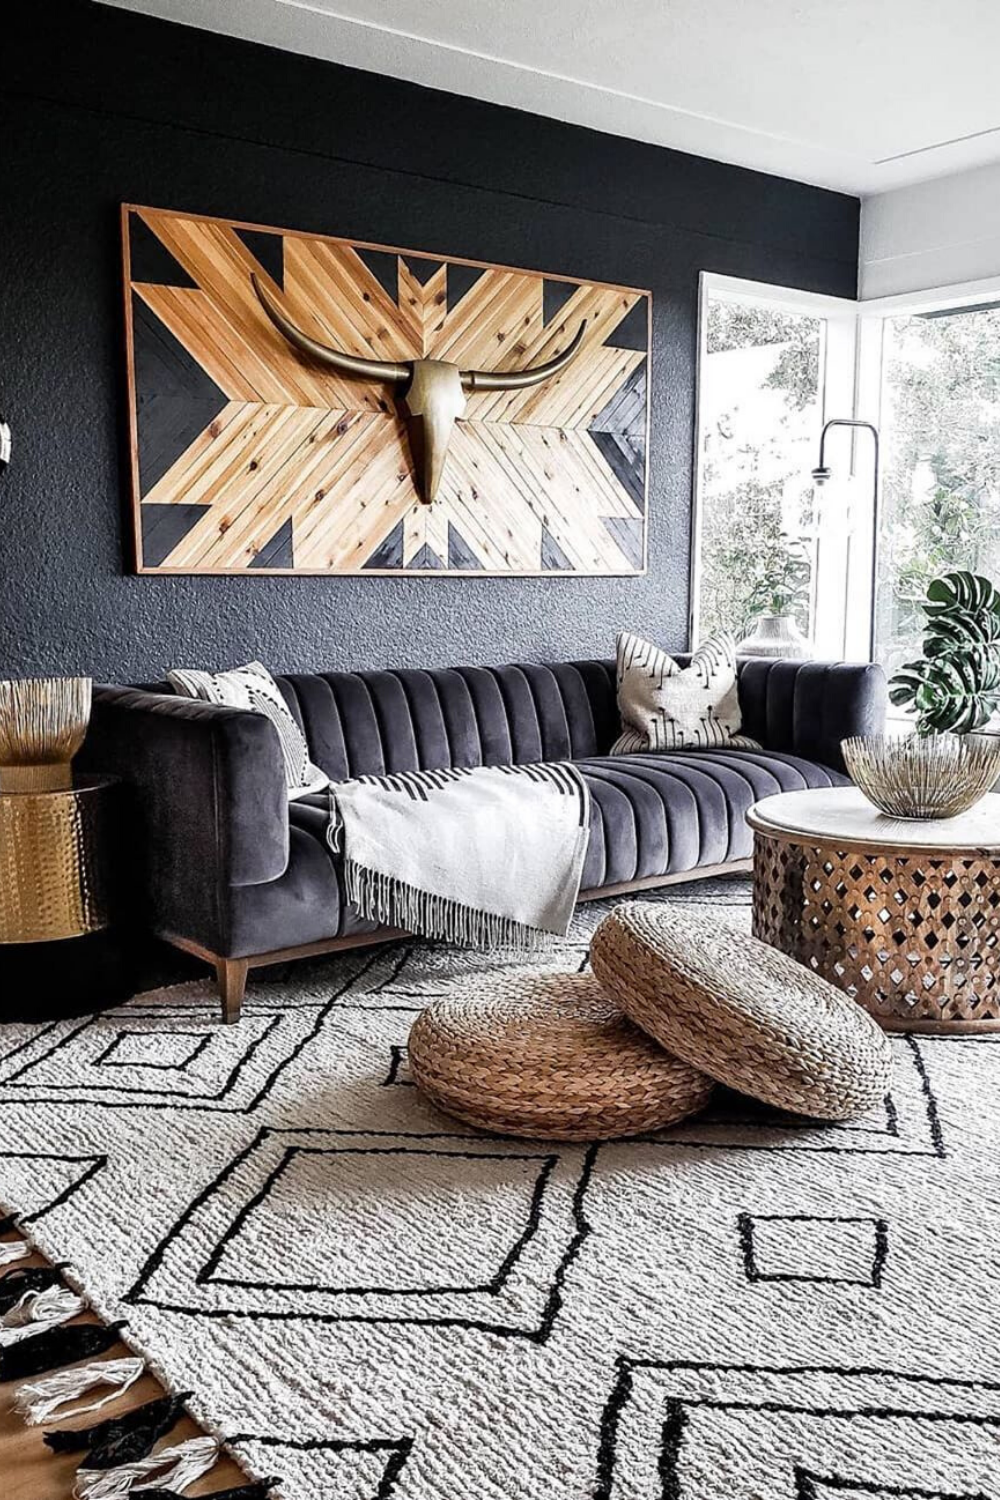 25 Modern Living Room Decor Ideas For Any Budget In 2020 African Home Decor Stylish Living Room Living Room Reveal #stylish #living #room #design